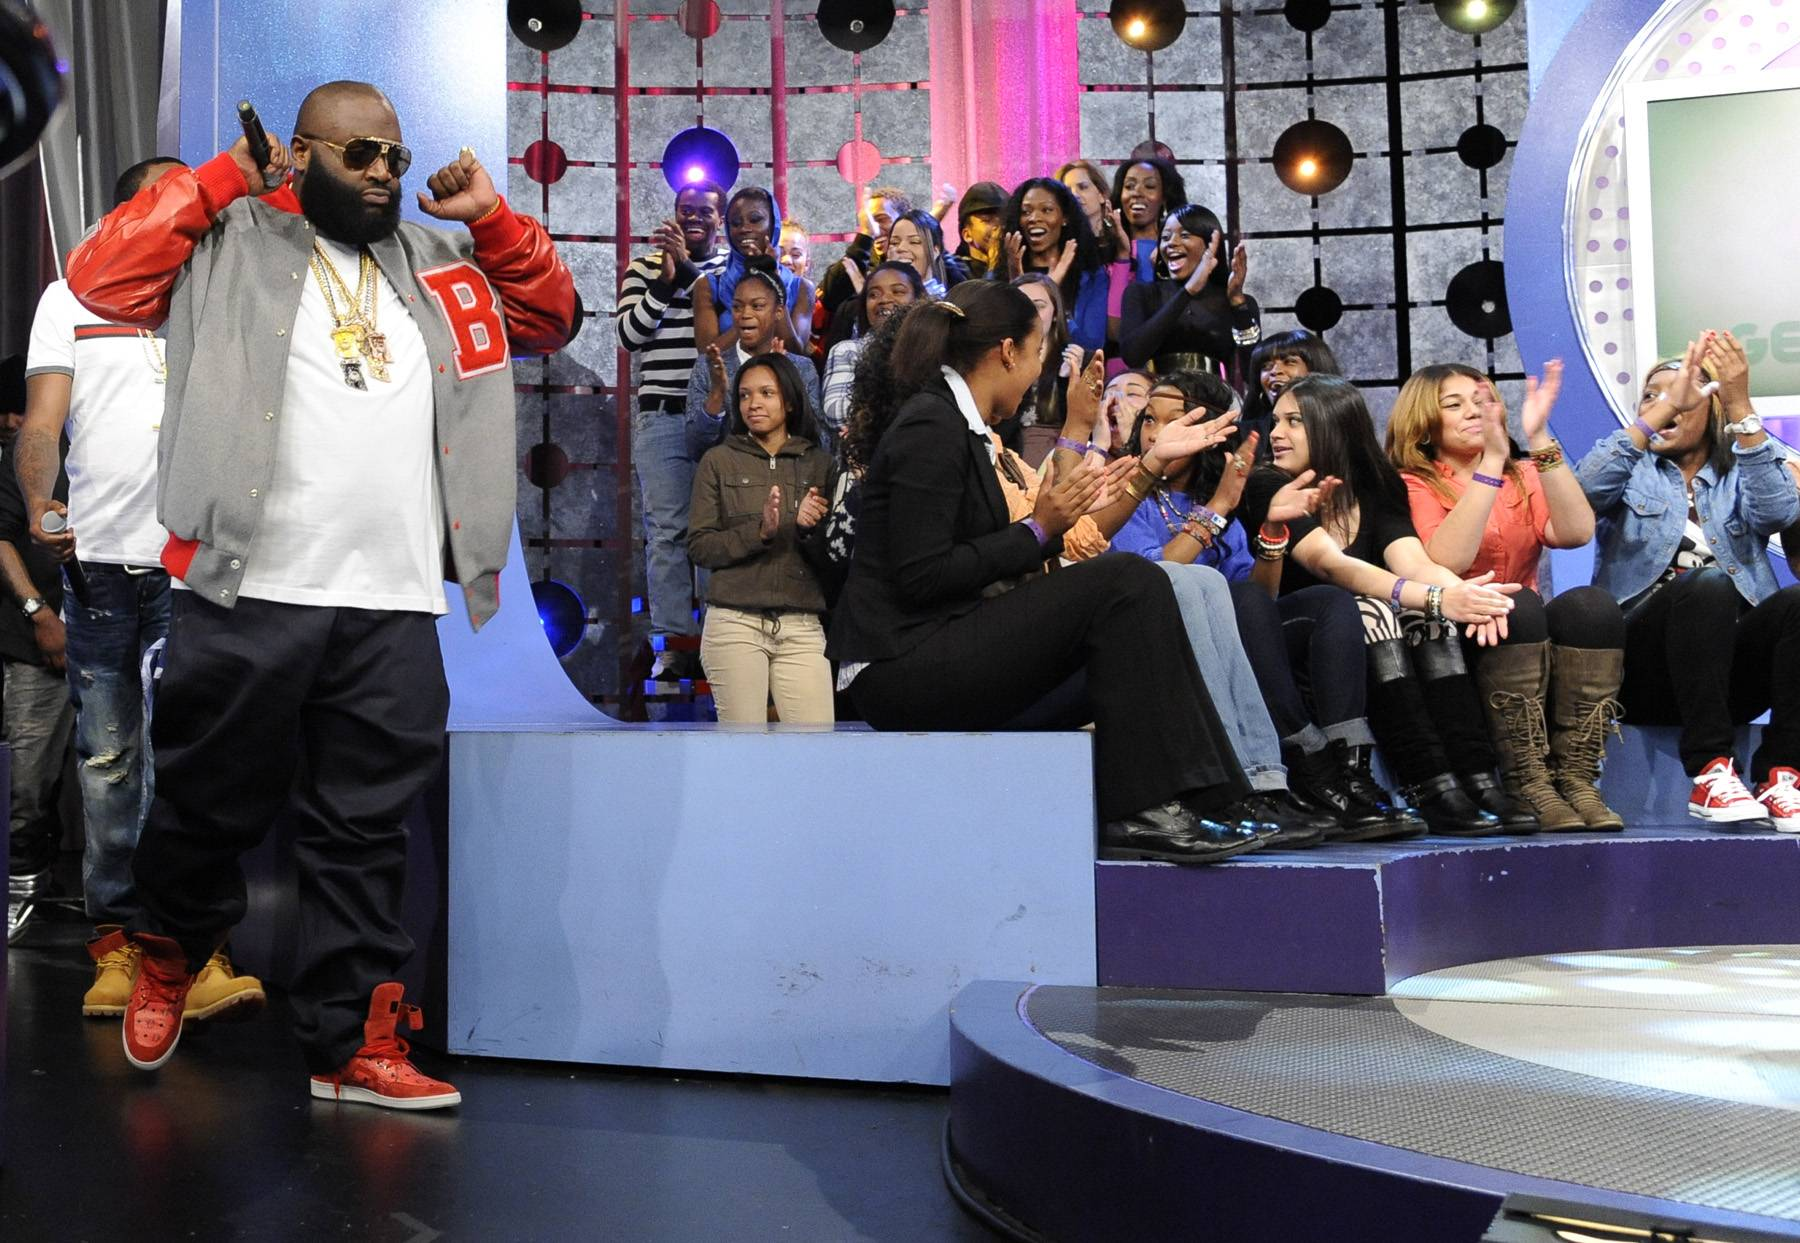 Move It - Rick Ross and MMG take the stage at 106 & Park, May 2, 2012.(Photo: John Ricard/BET)